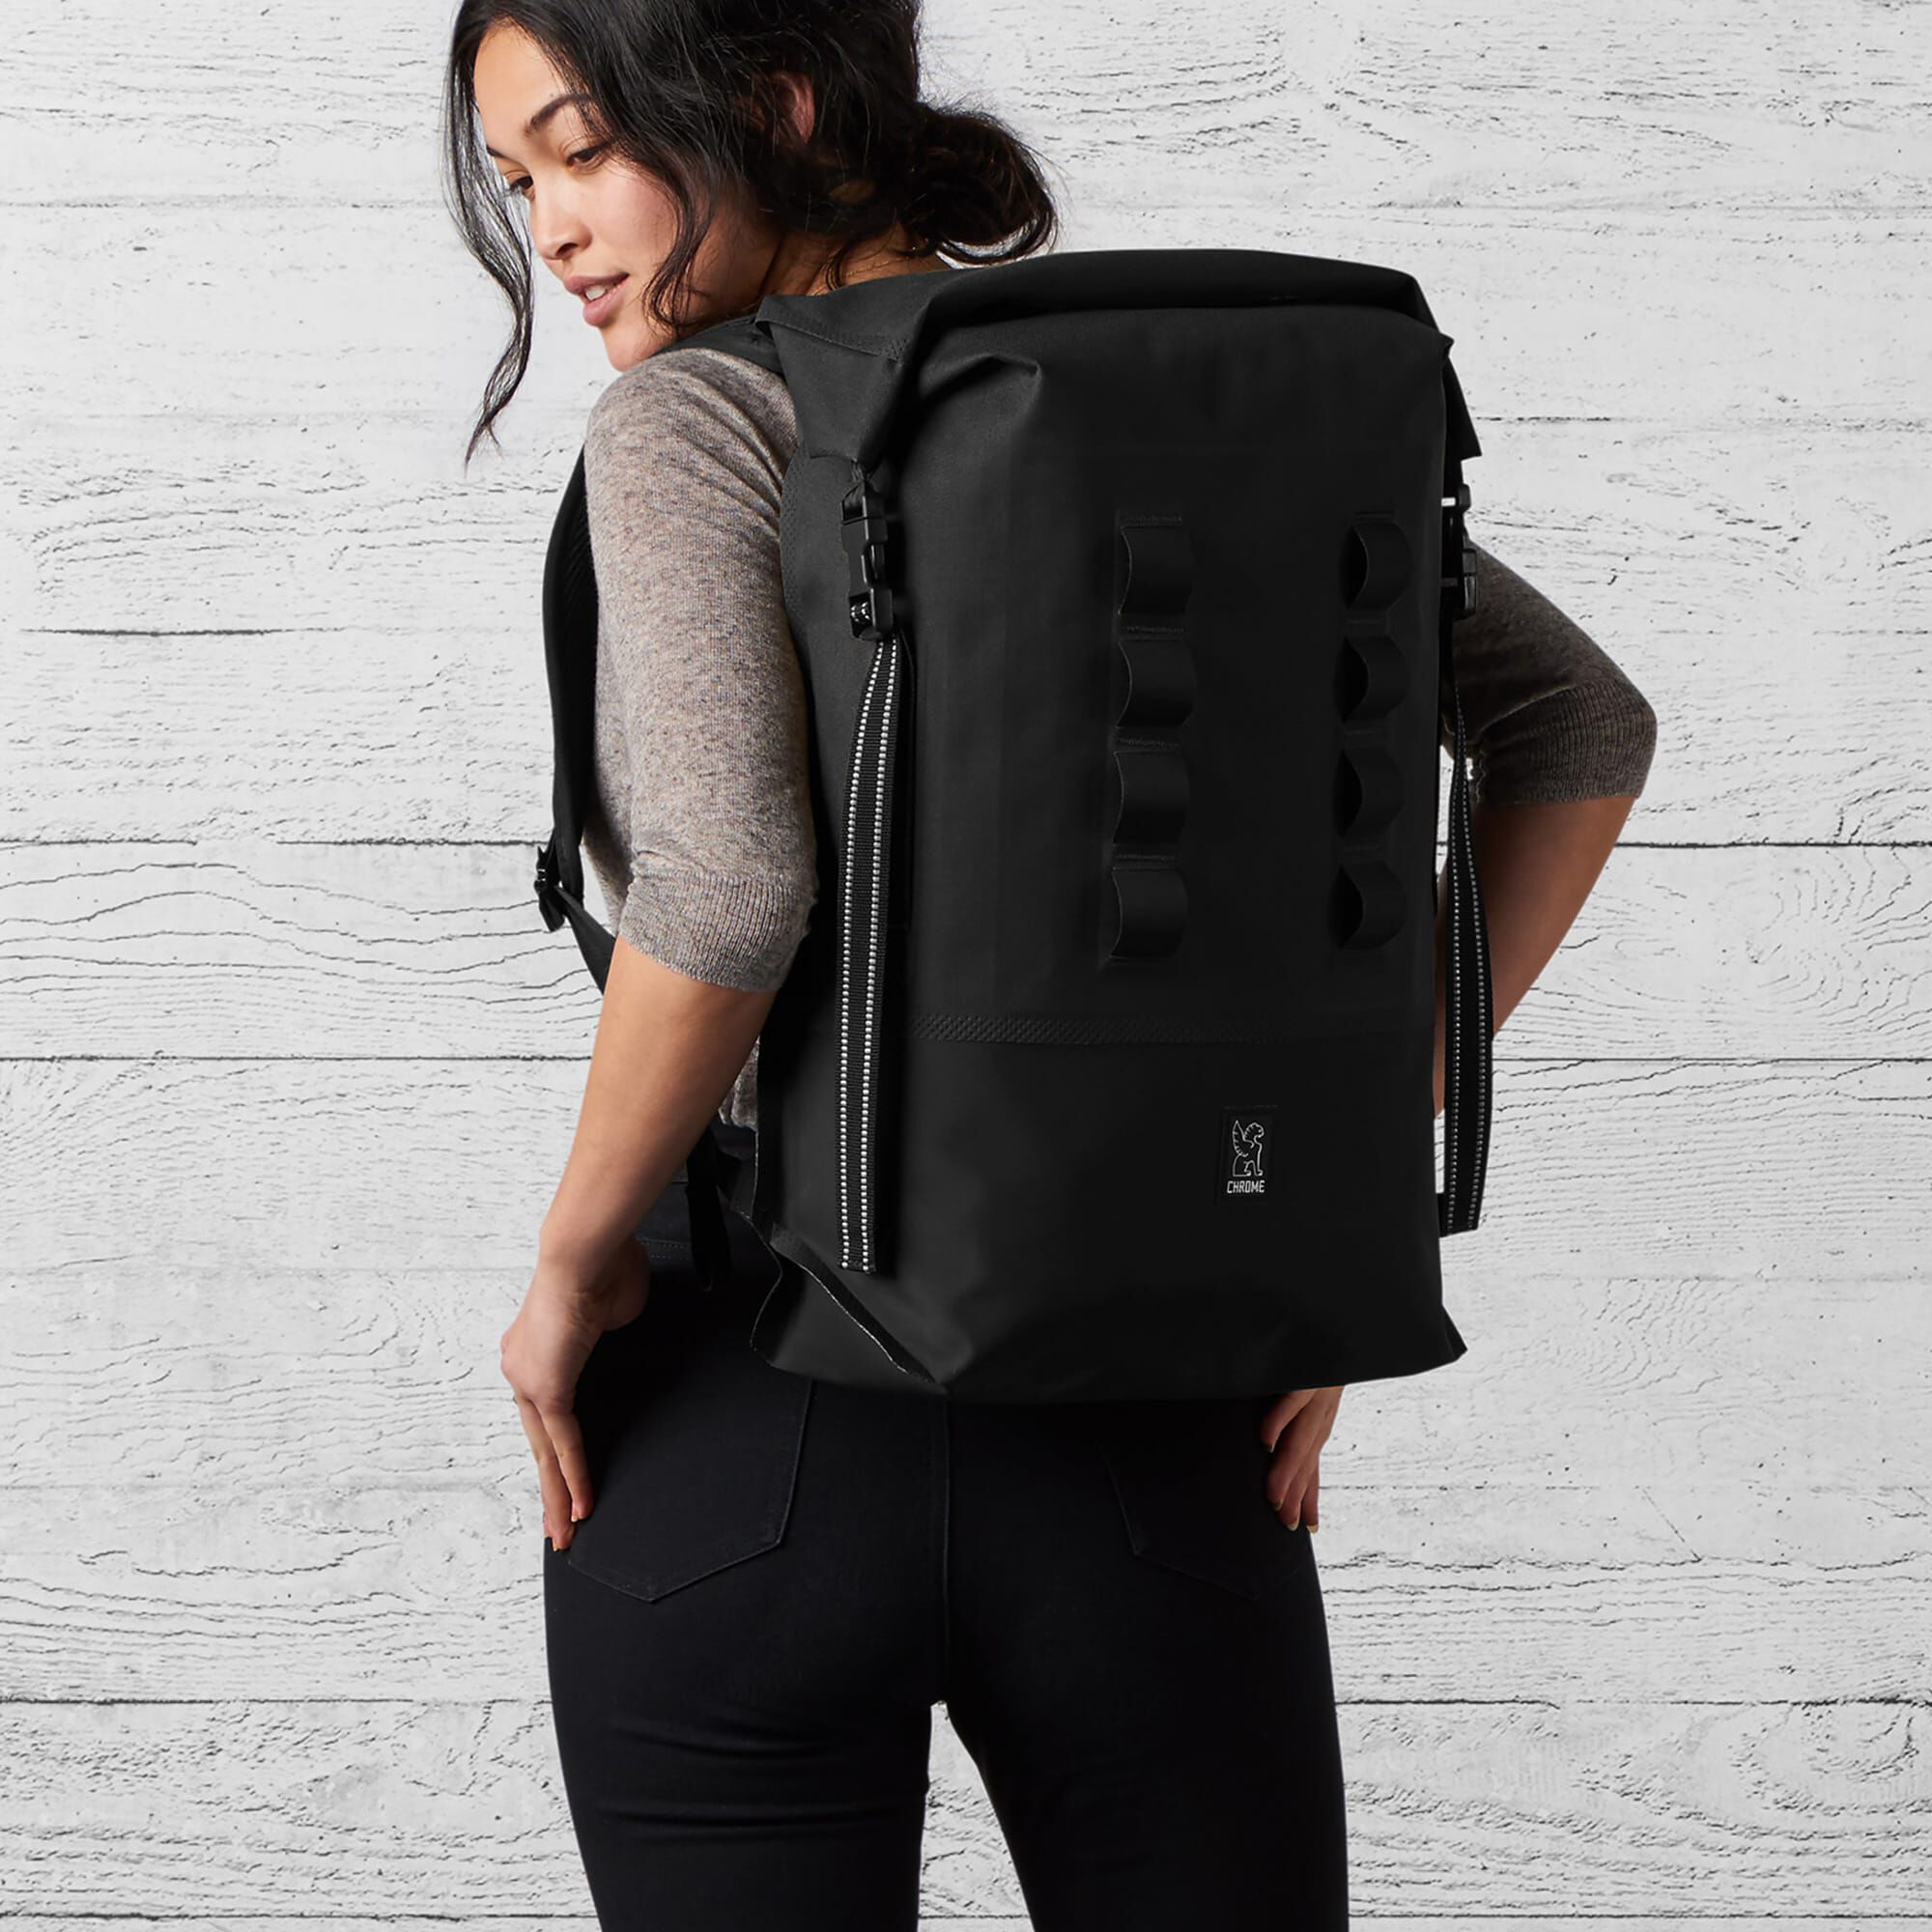 Urban Ex Rolltop 28l Backpack In Black Small View